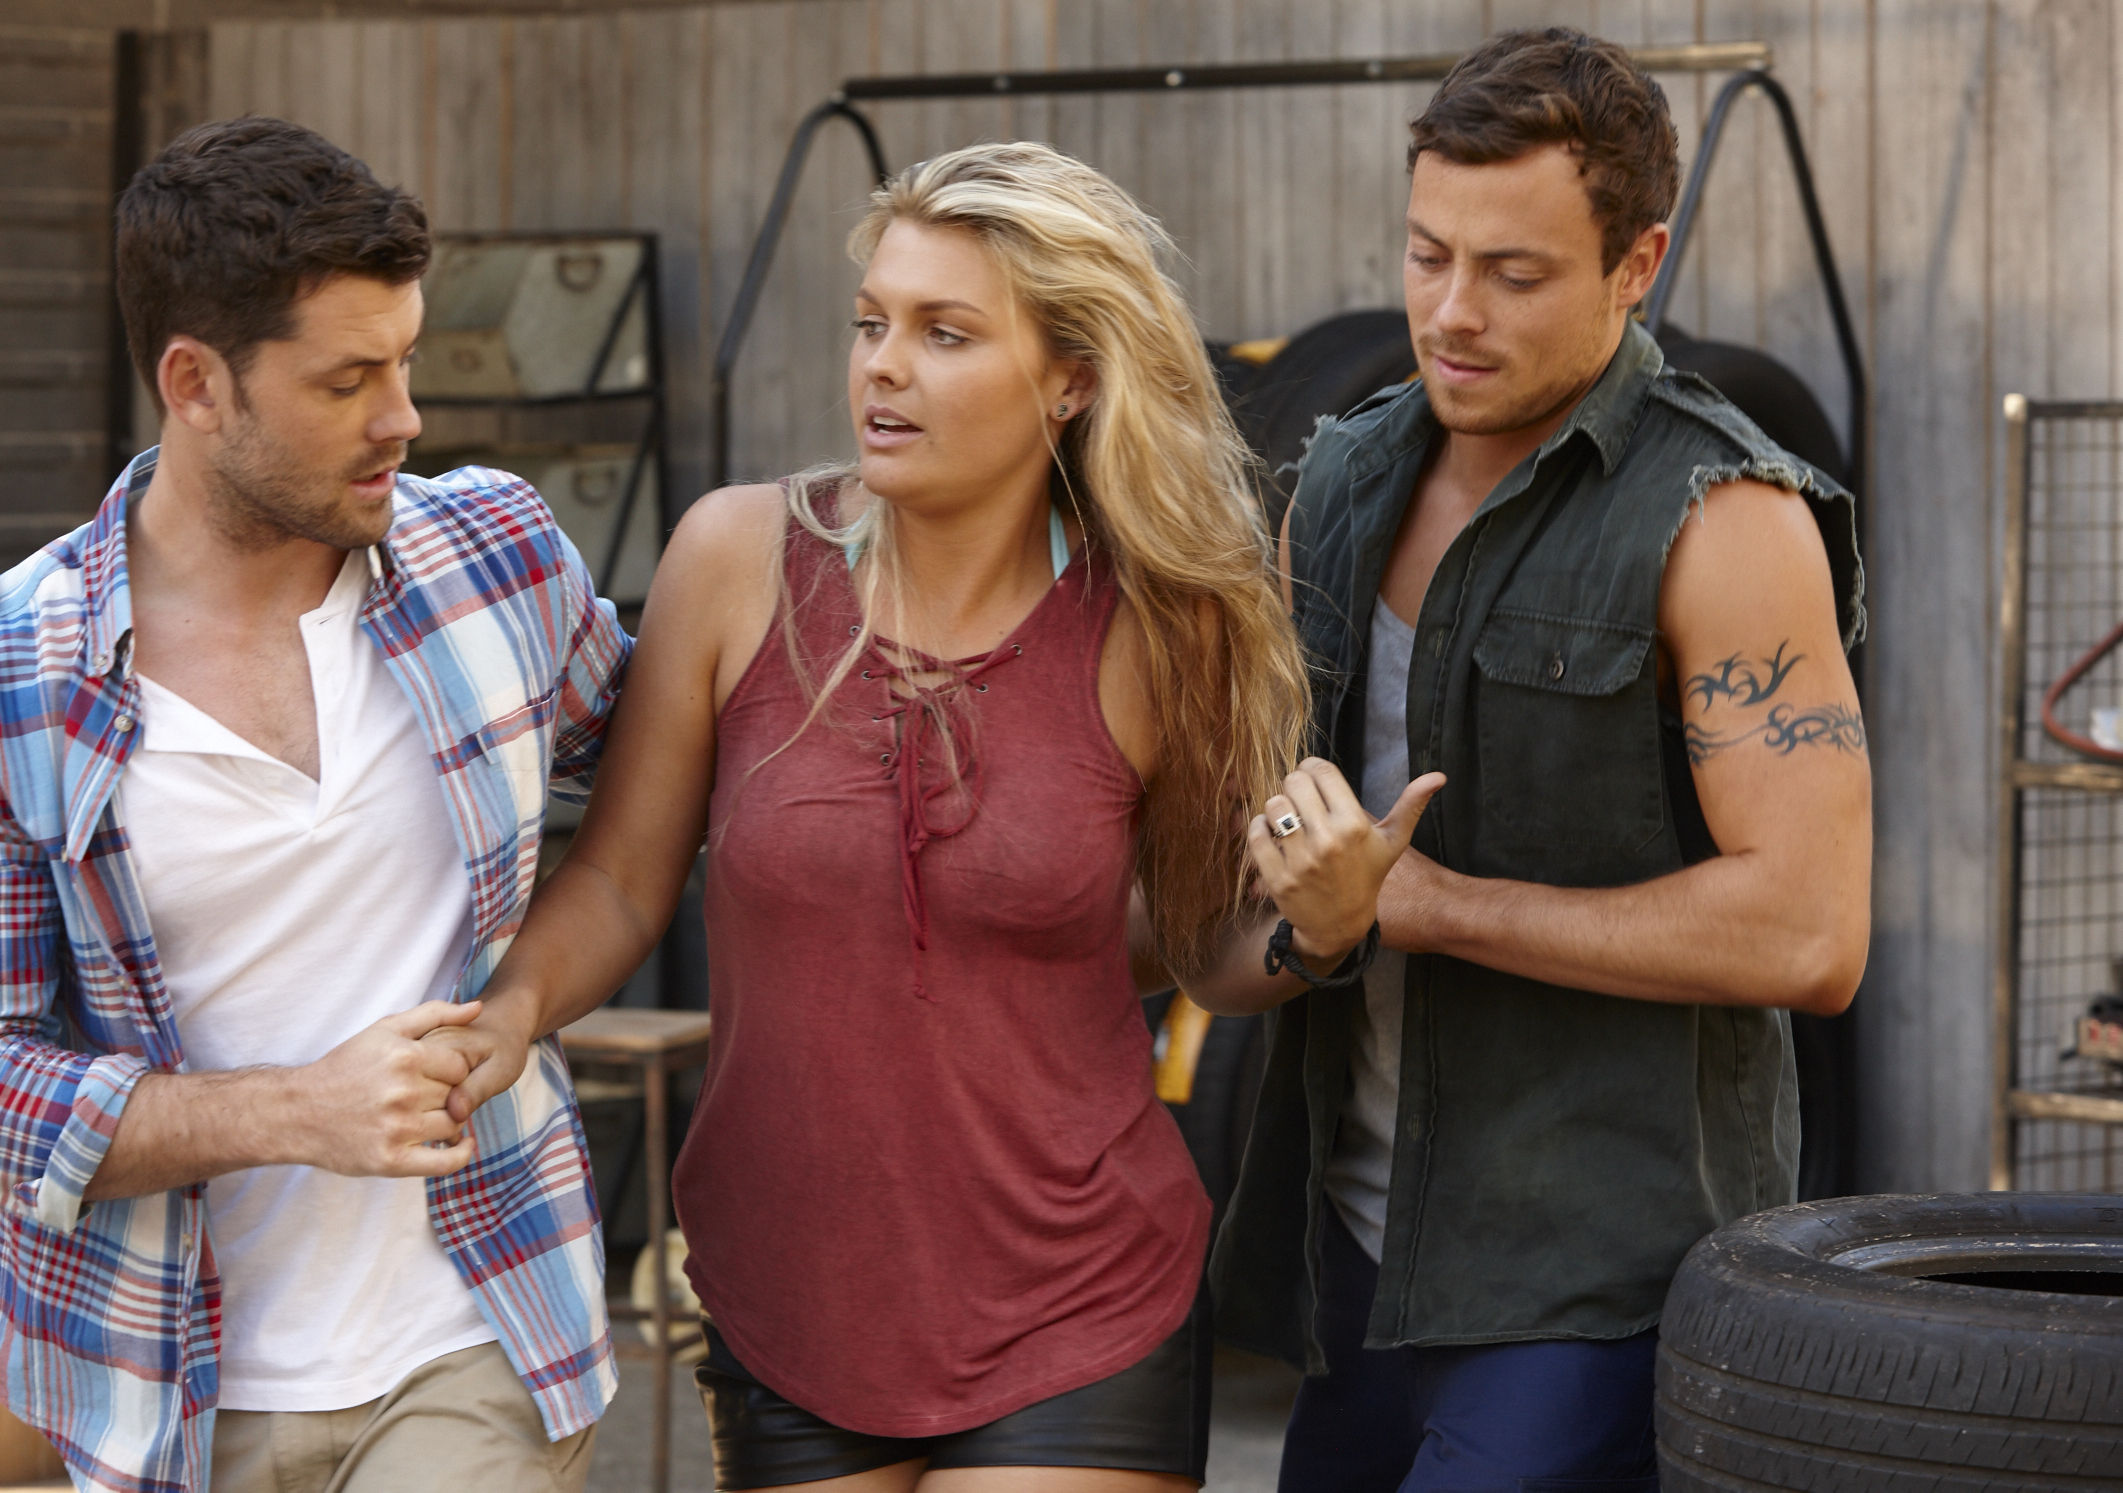 Pity, home and away star sex video share